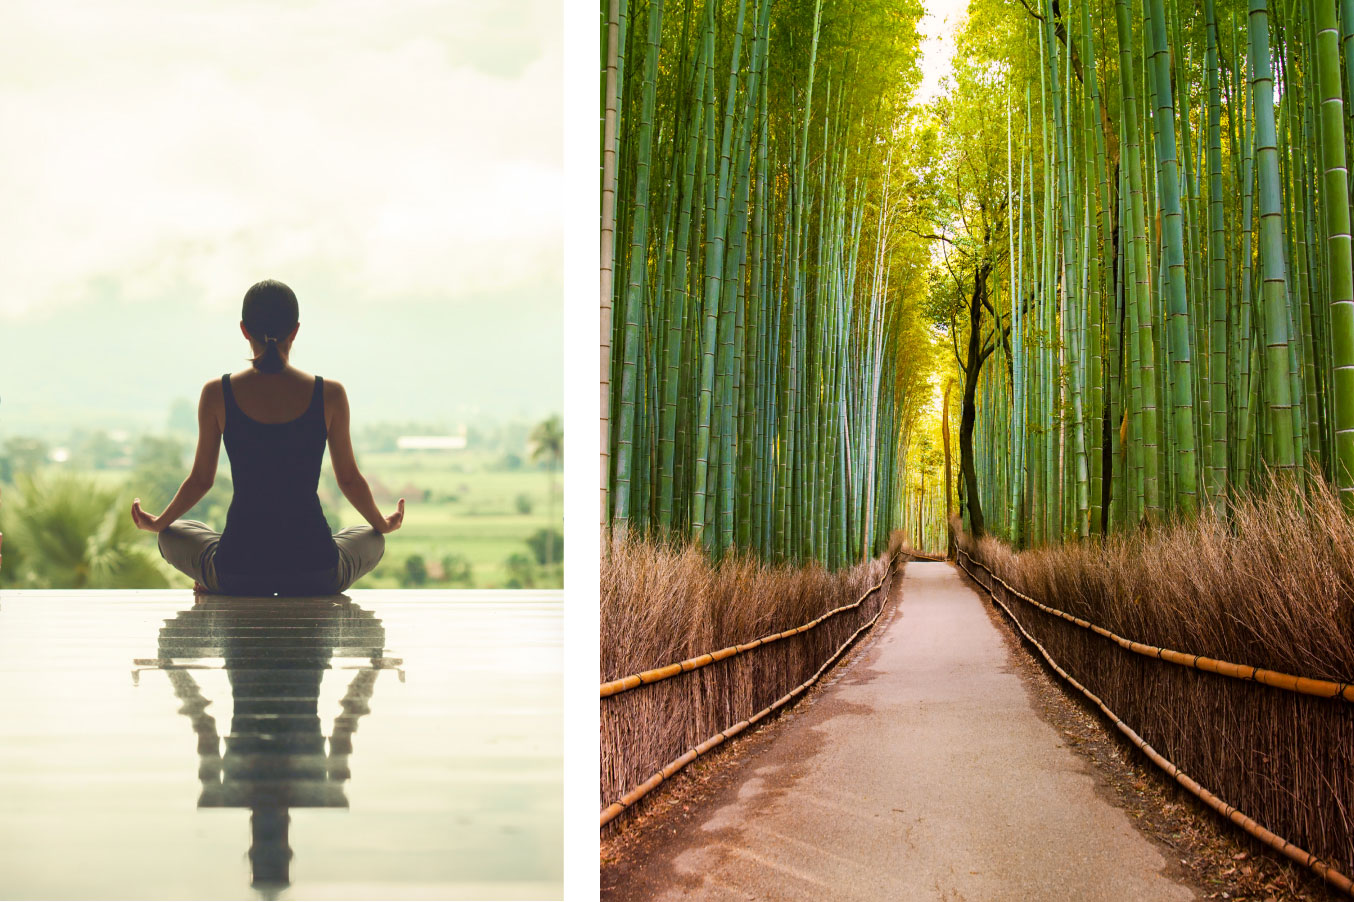 A person peacefully meditating in the lotus position next to a clean, clear path through endless bamboo.